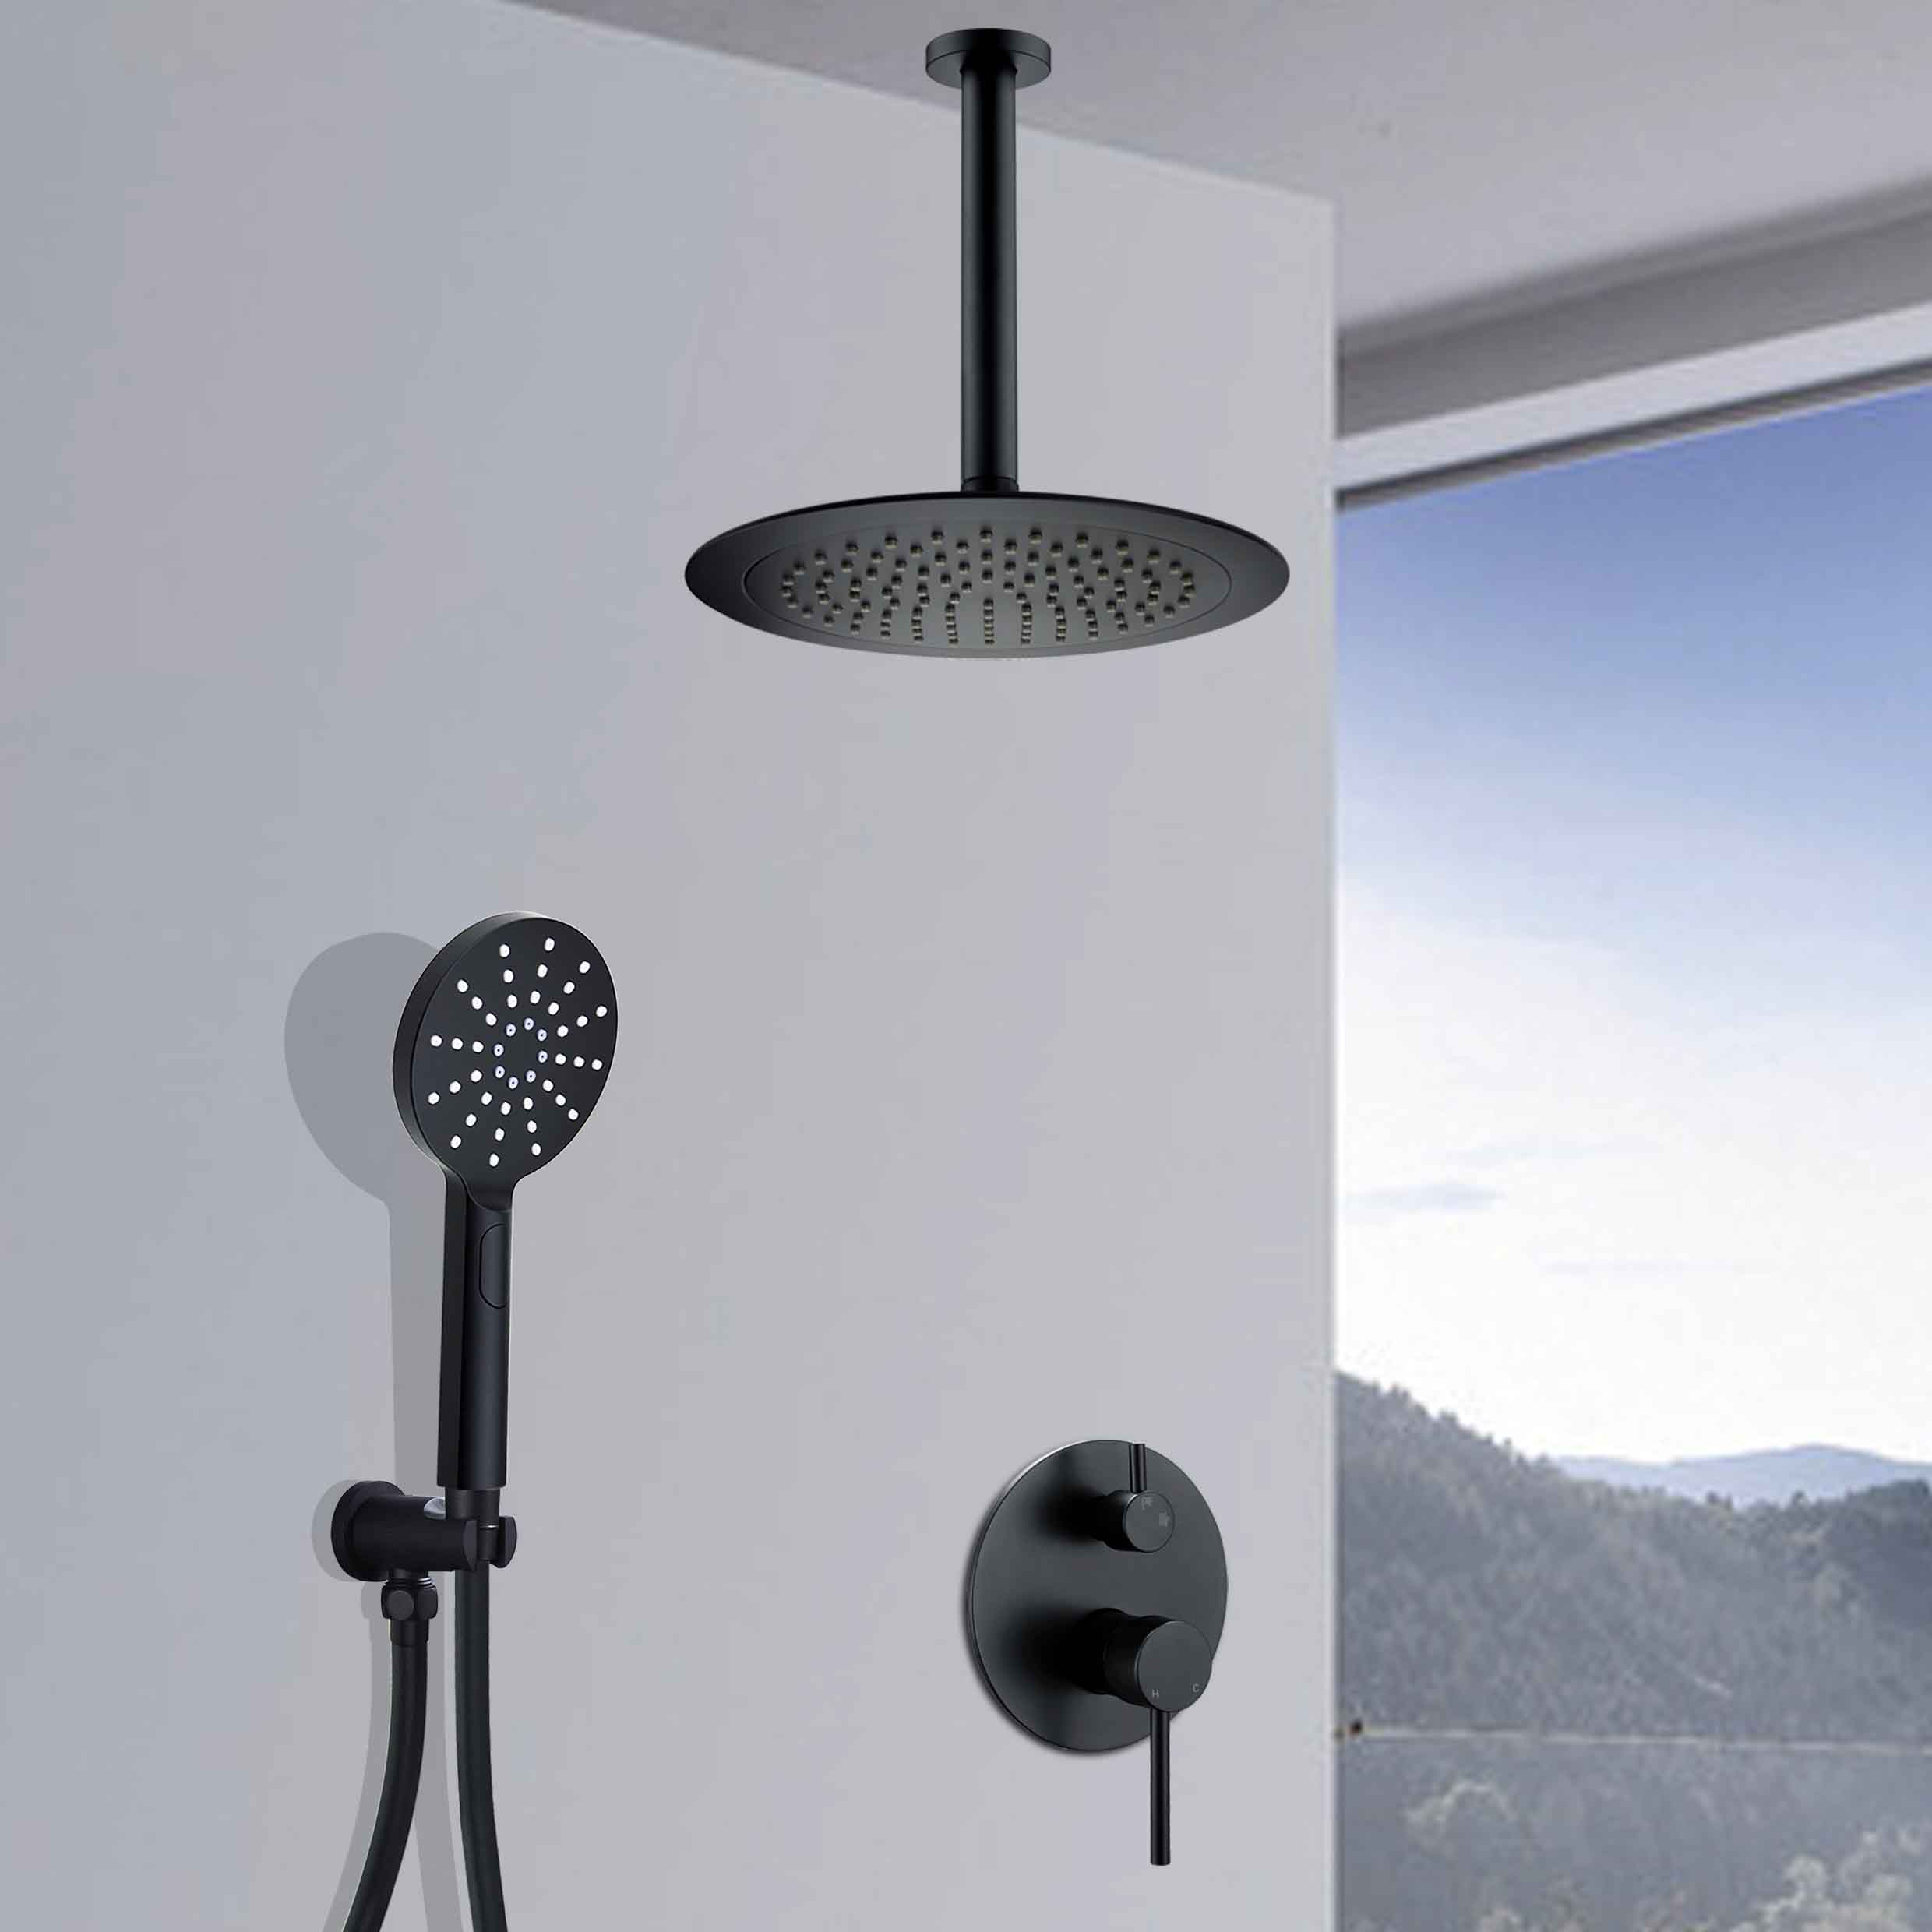 Details About Matte Black Shower Set 9 Rainfall Shower Head Mixer Valve Brass Ceiling Arm